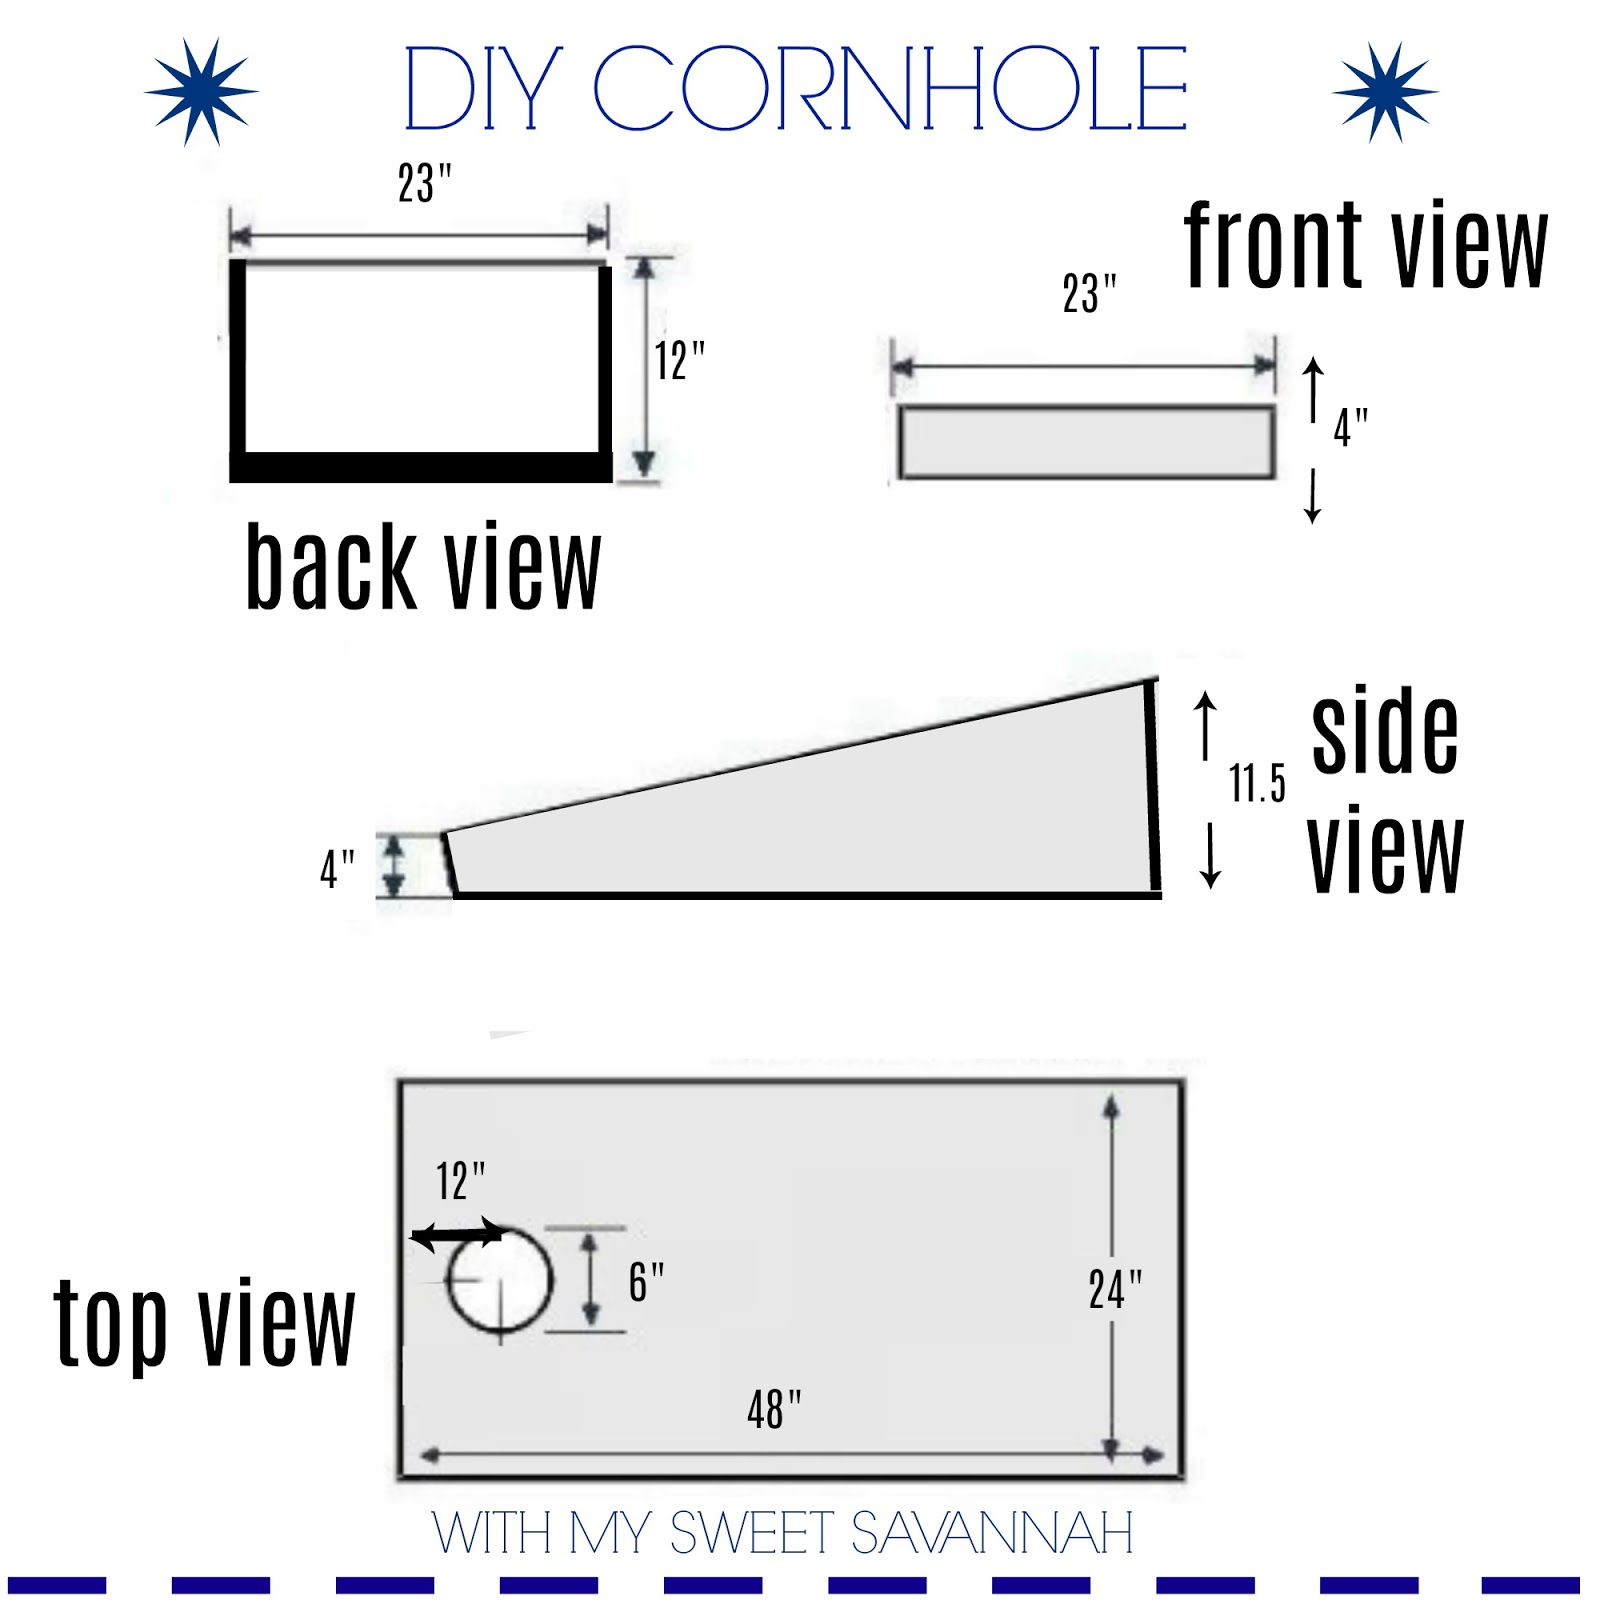 corn hole board plans below are the design plans to